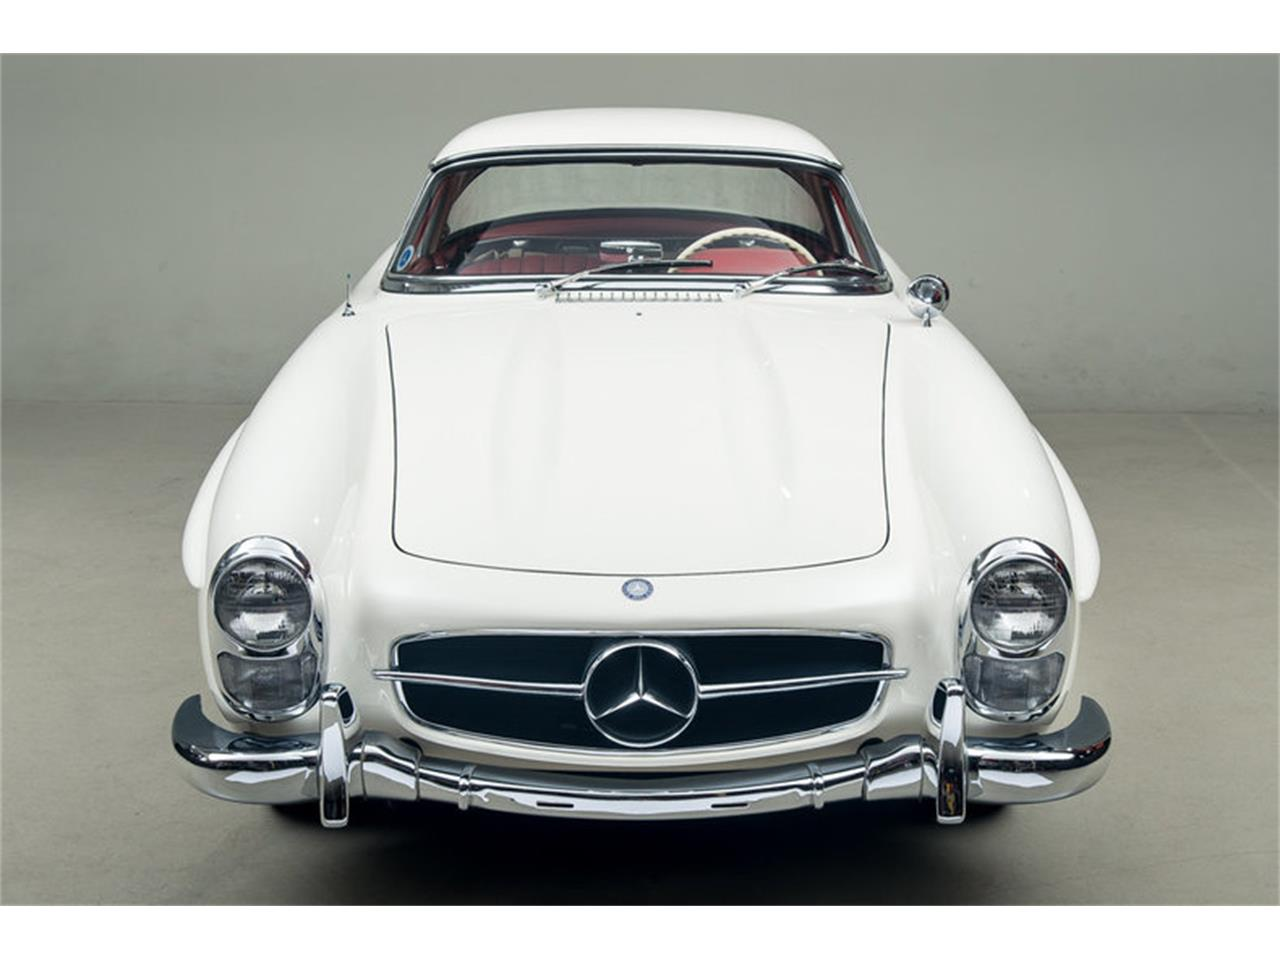 Large Picture of Classic 1963 Mercedes-Benz 300SL Roadster Offered by Canepa - EFPZ